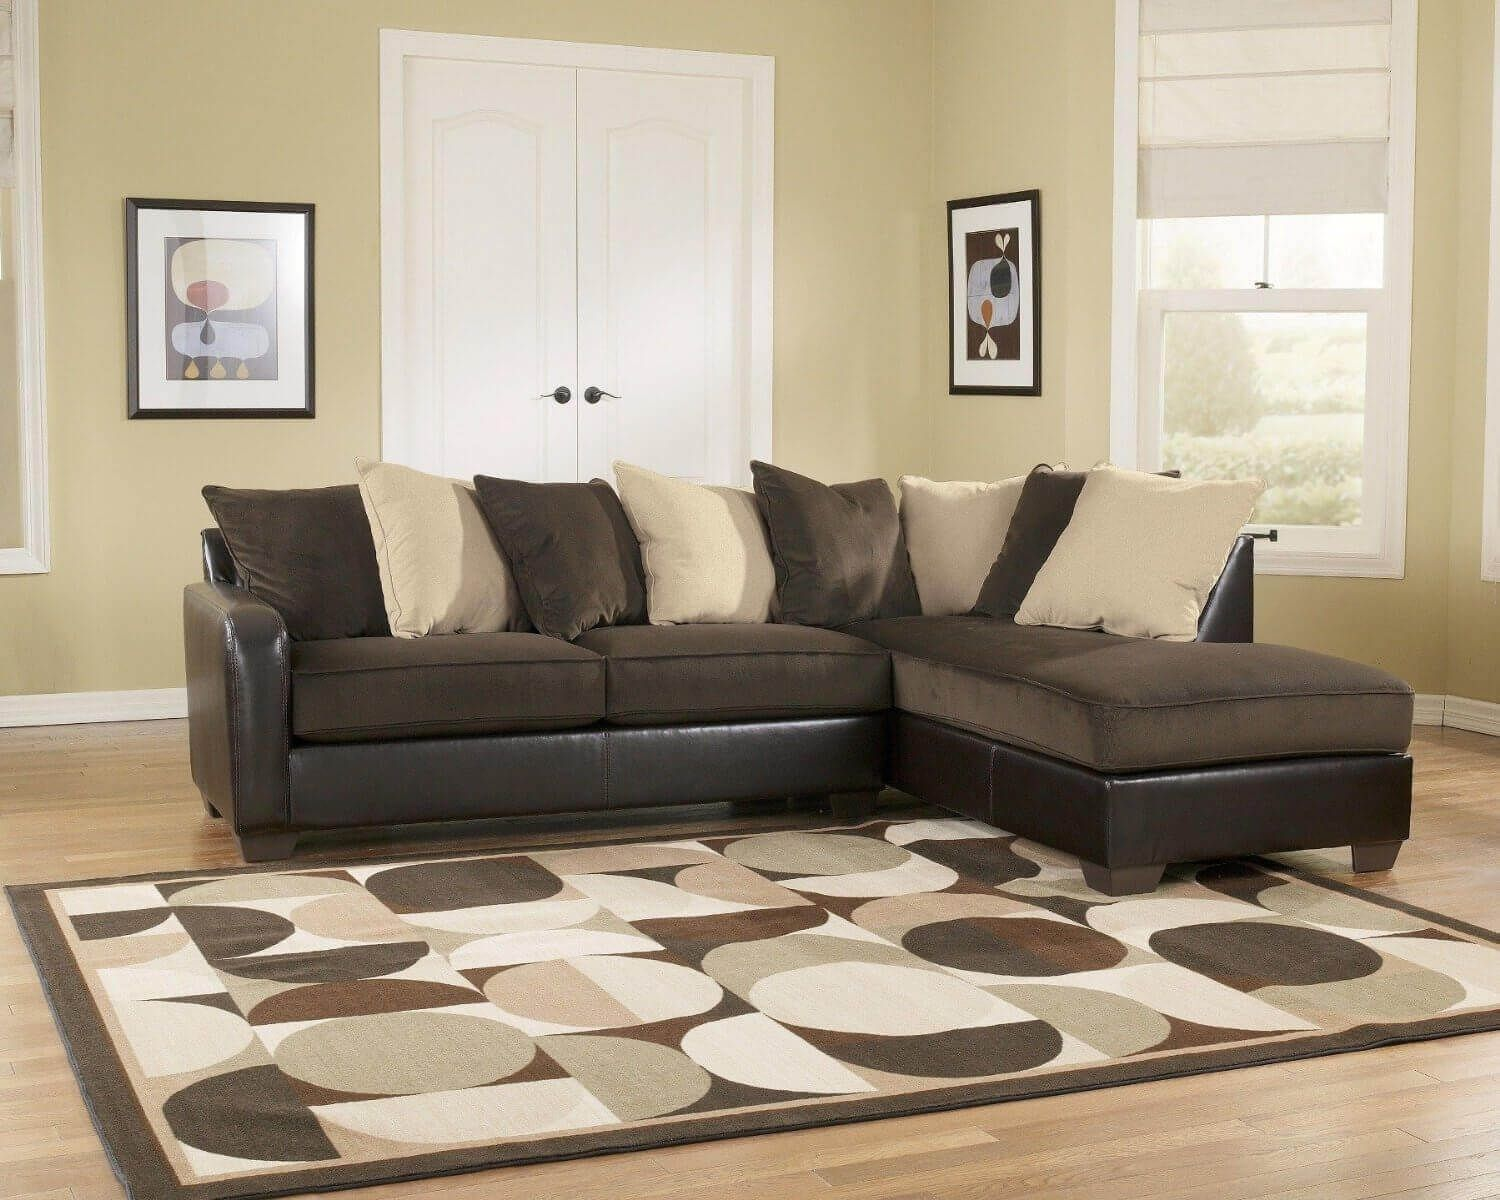 Leather Sofa Sectionals Under 1000 With Images Sectional Sofa